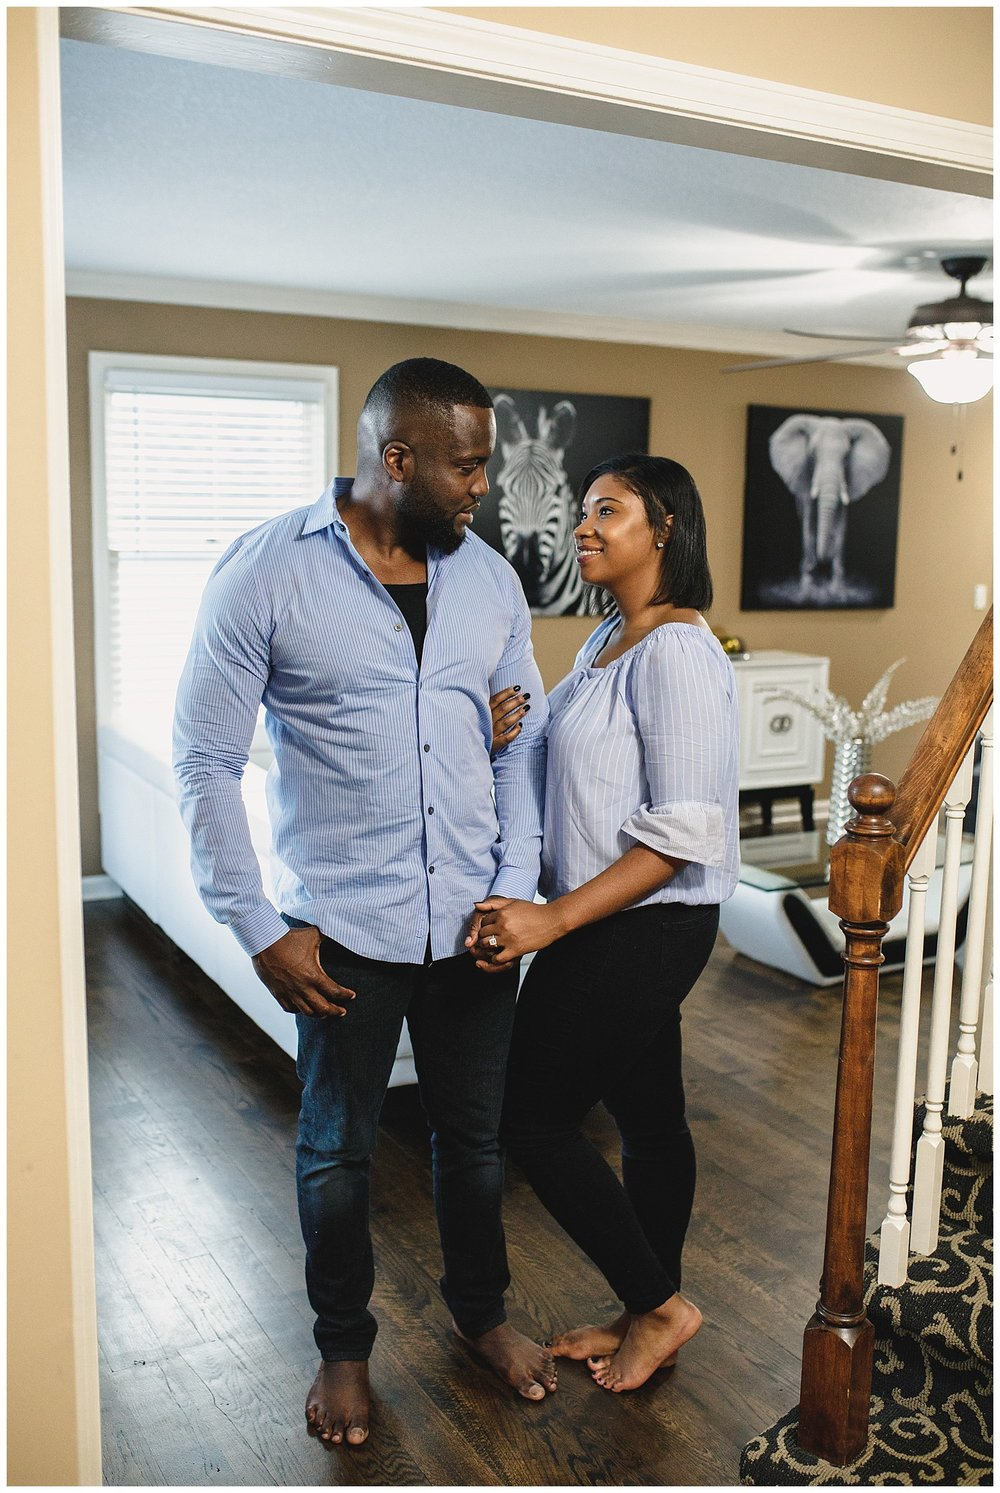 Kansas_City_Engagment_In_Home_Session_Kelsey_Diane_Photography_Wedding_Photographer_Engagment_Photographer_0120_Bri_Prime.jpg